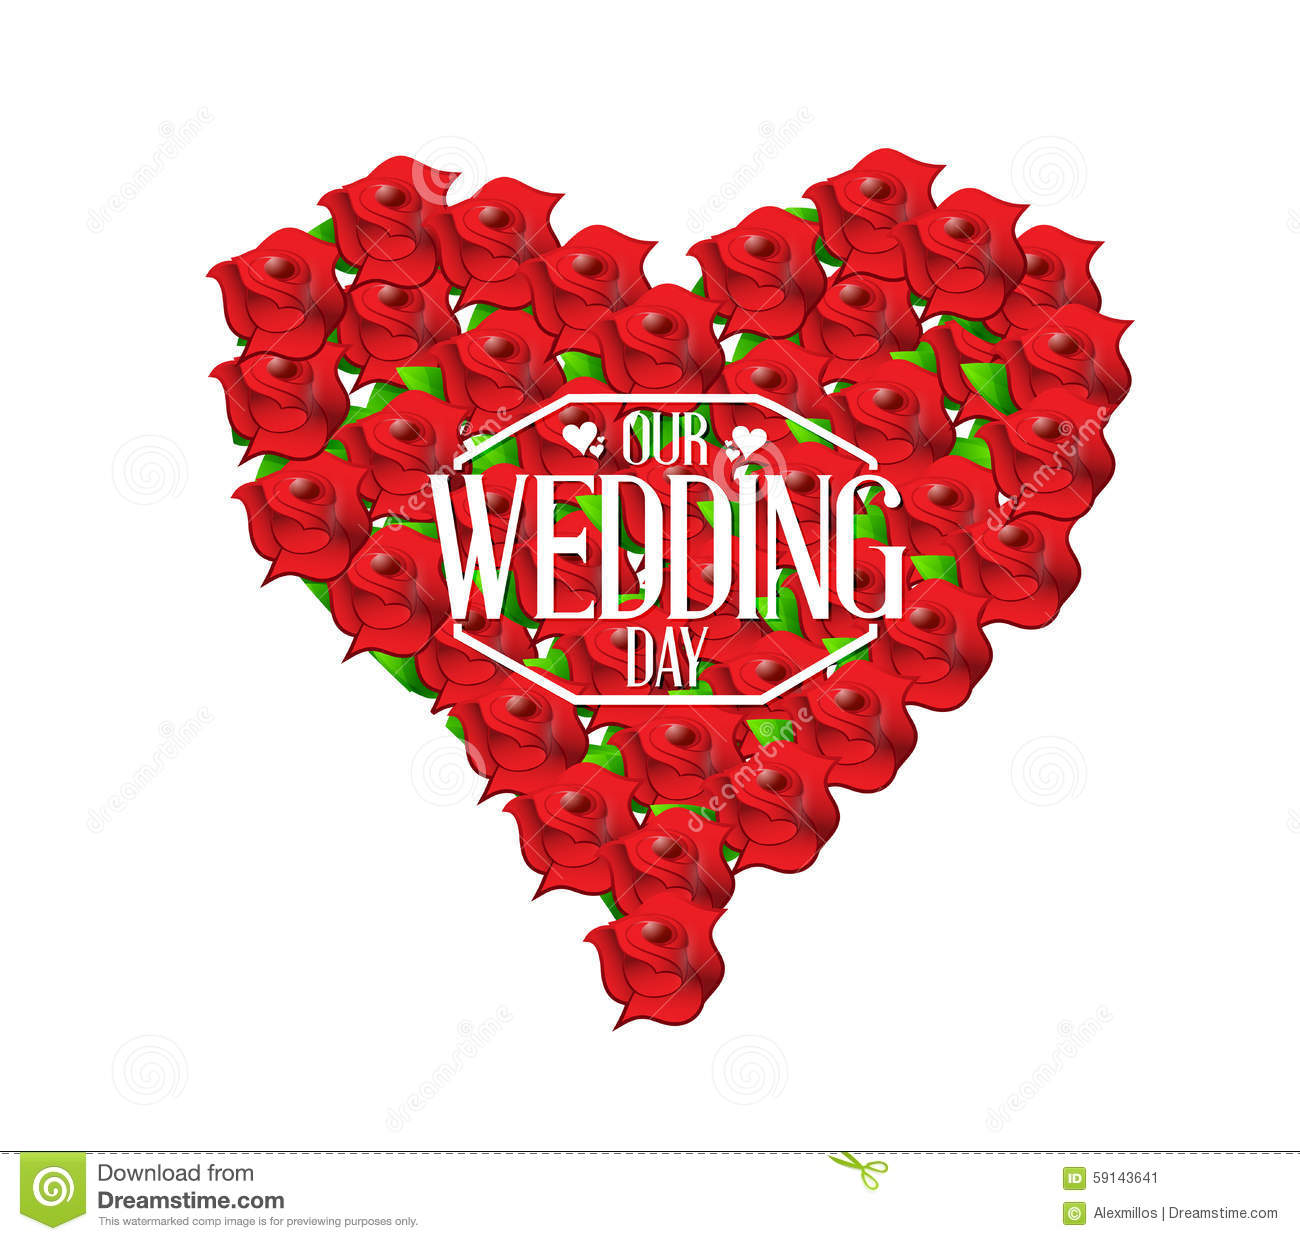 Our Wedding Day Love Heart In Flowers Illustration Stock